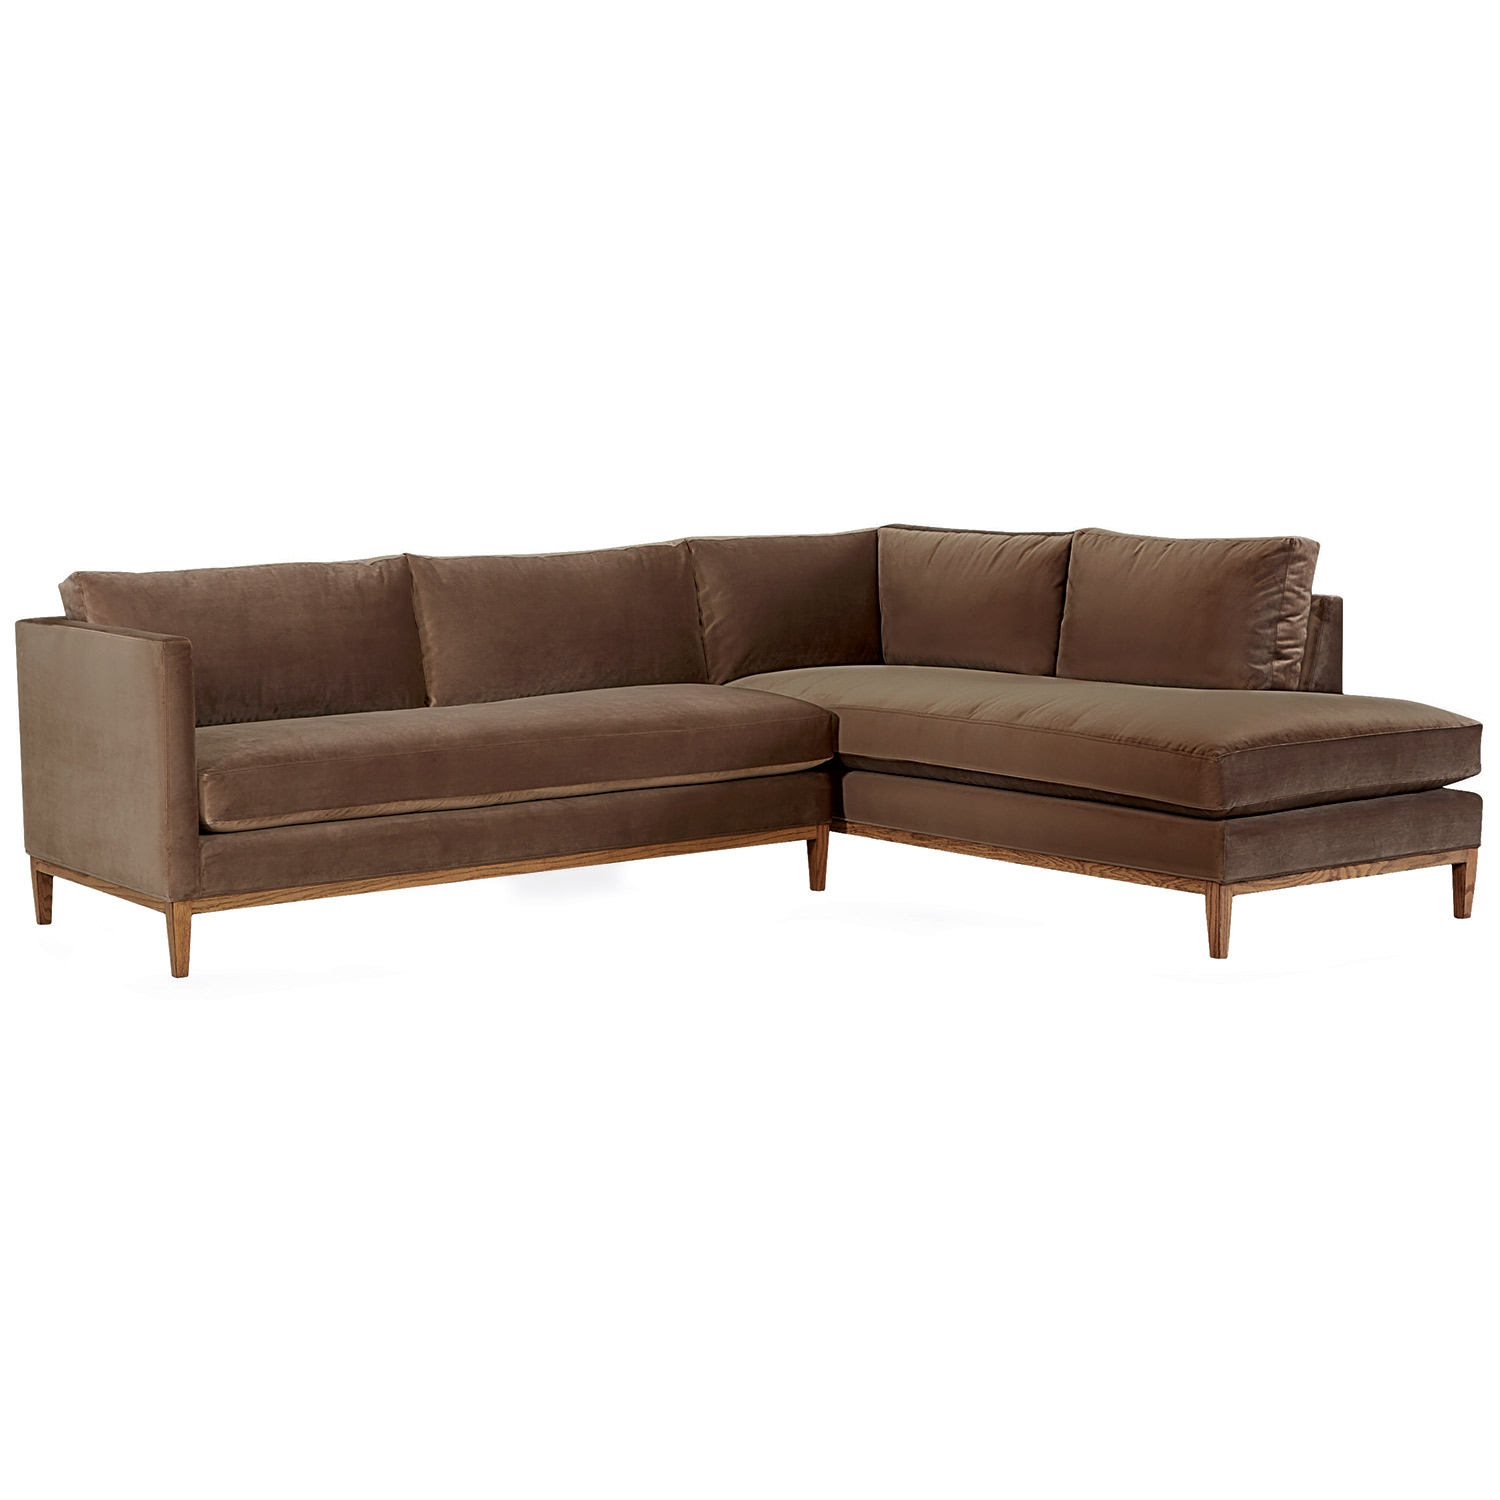 Modern Sofas Modern Couches Leather Sofas Contemporary Intended For Stratford Sofas (Image 8 of 15)